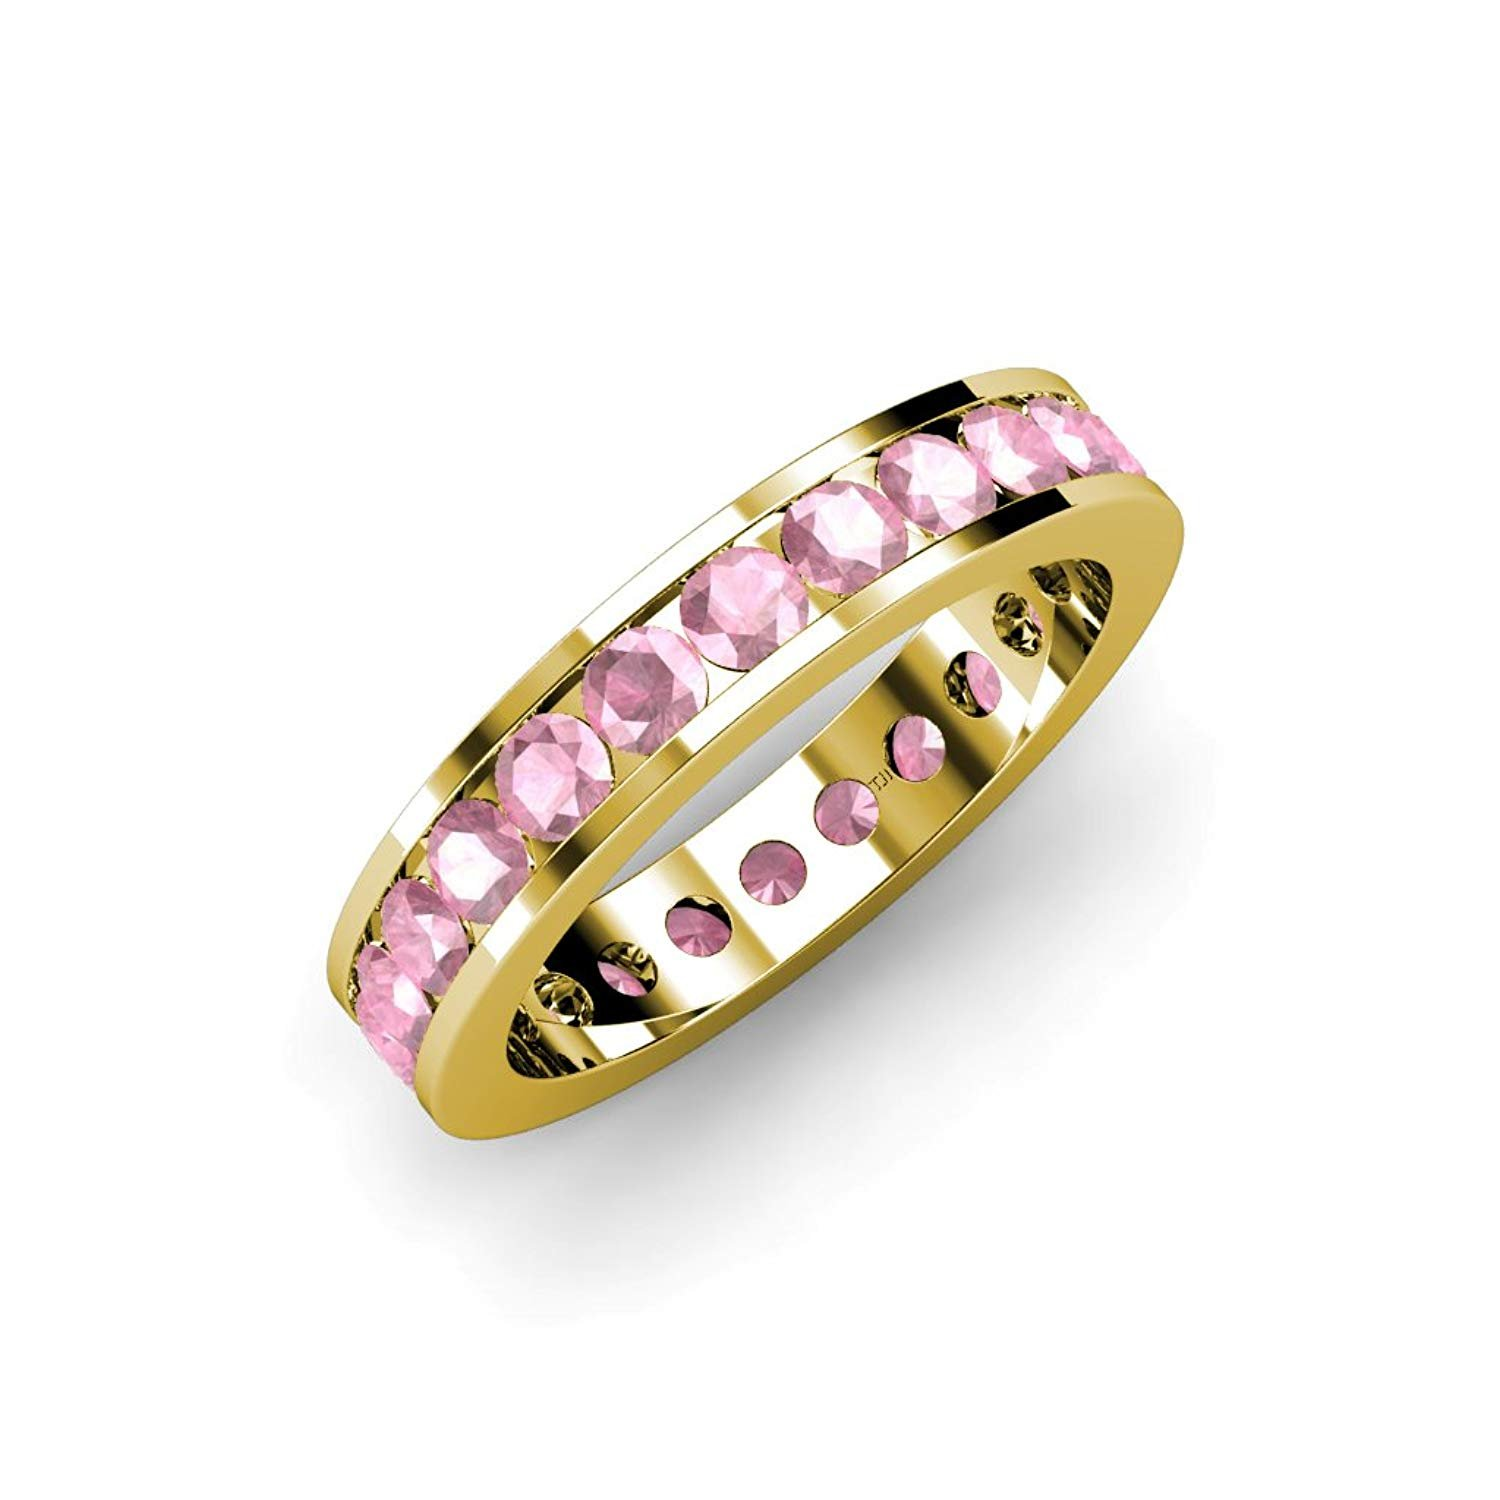 Pink Tourmaline Channel Set Eternity Band 1.99 ct tw to 2.40 ct tw in 14K Yellow Gold.size 8.0 by TriJewels